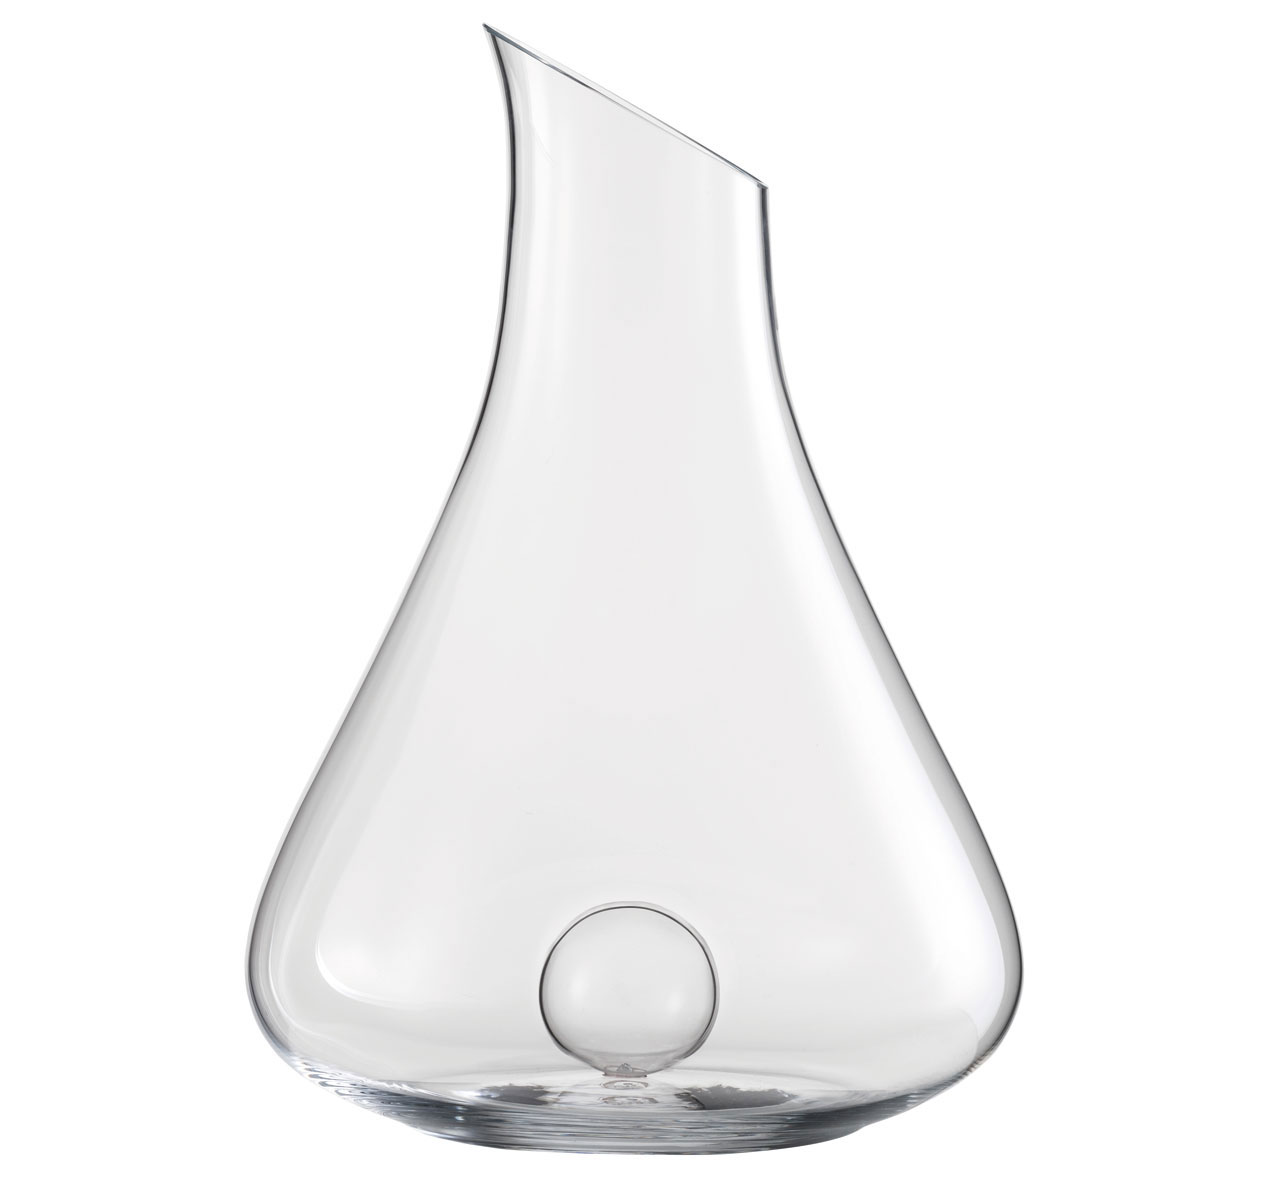 Schott Zwiesel Tritan Crystal, 1872 Air Sense Crystal Red Wine Decanter